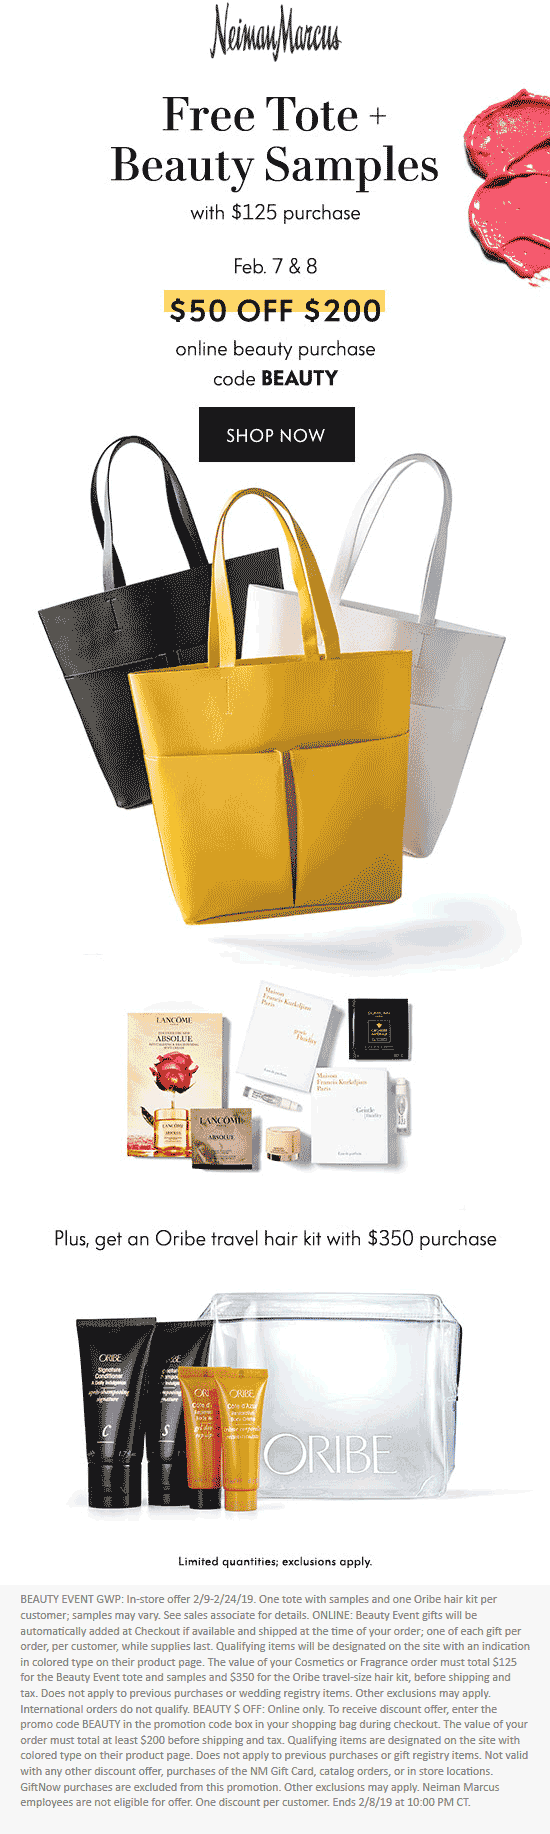 Neiman Marcus Coupon August 2019 Free tote & more at Neiman Marcus, or online via promo code BEAUTY